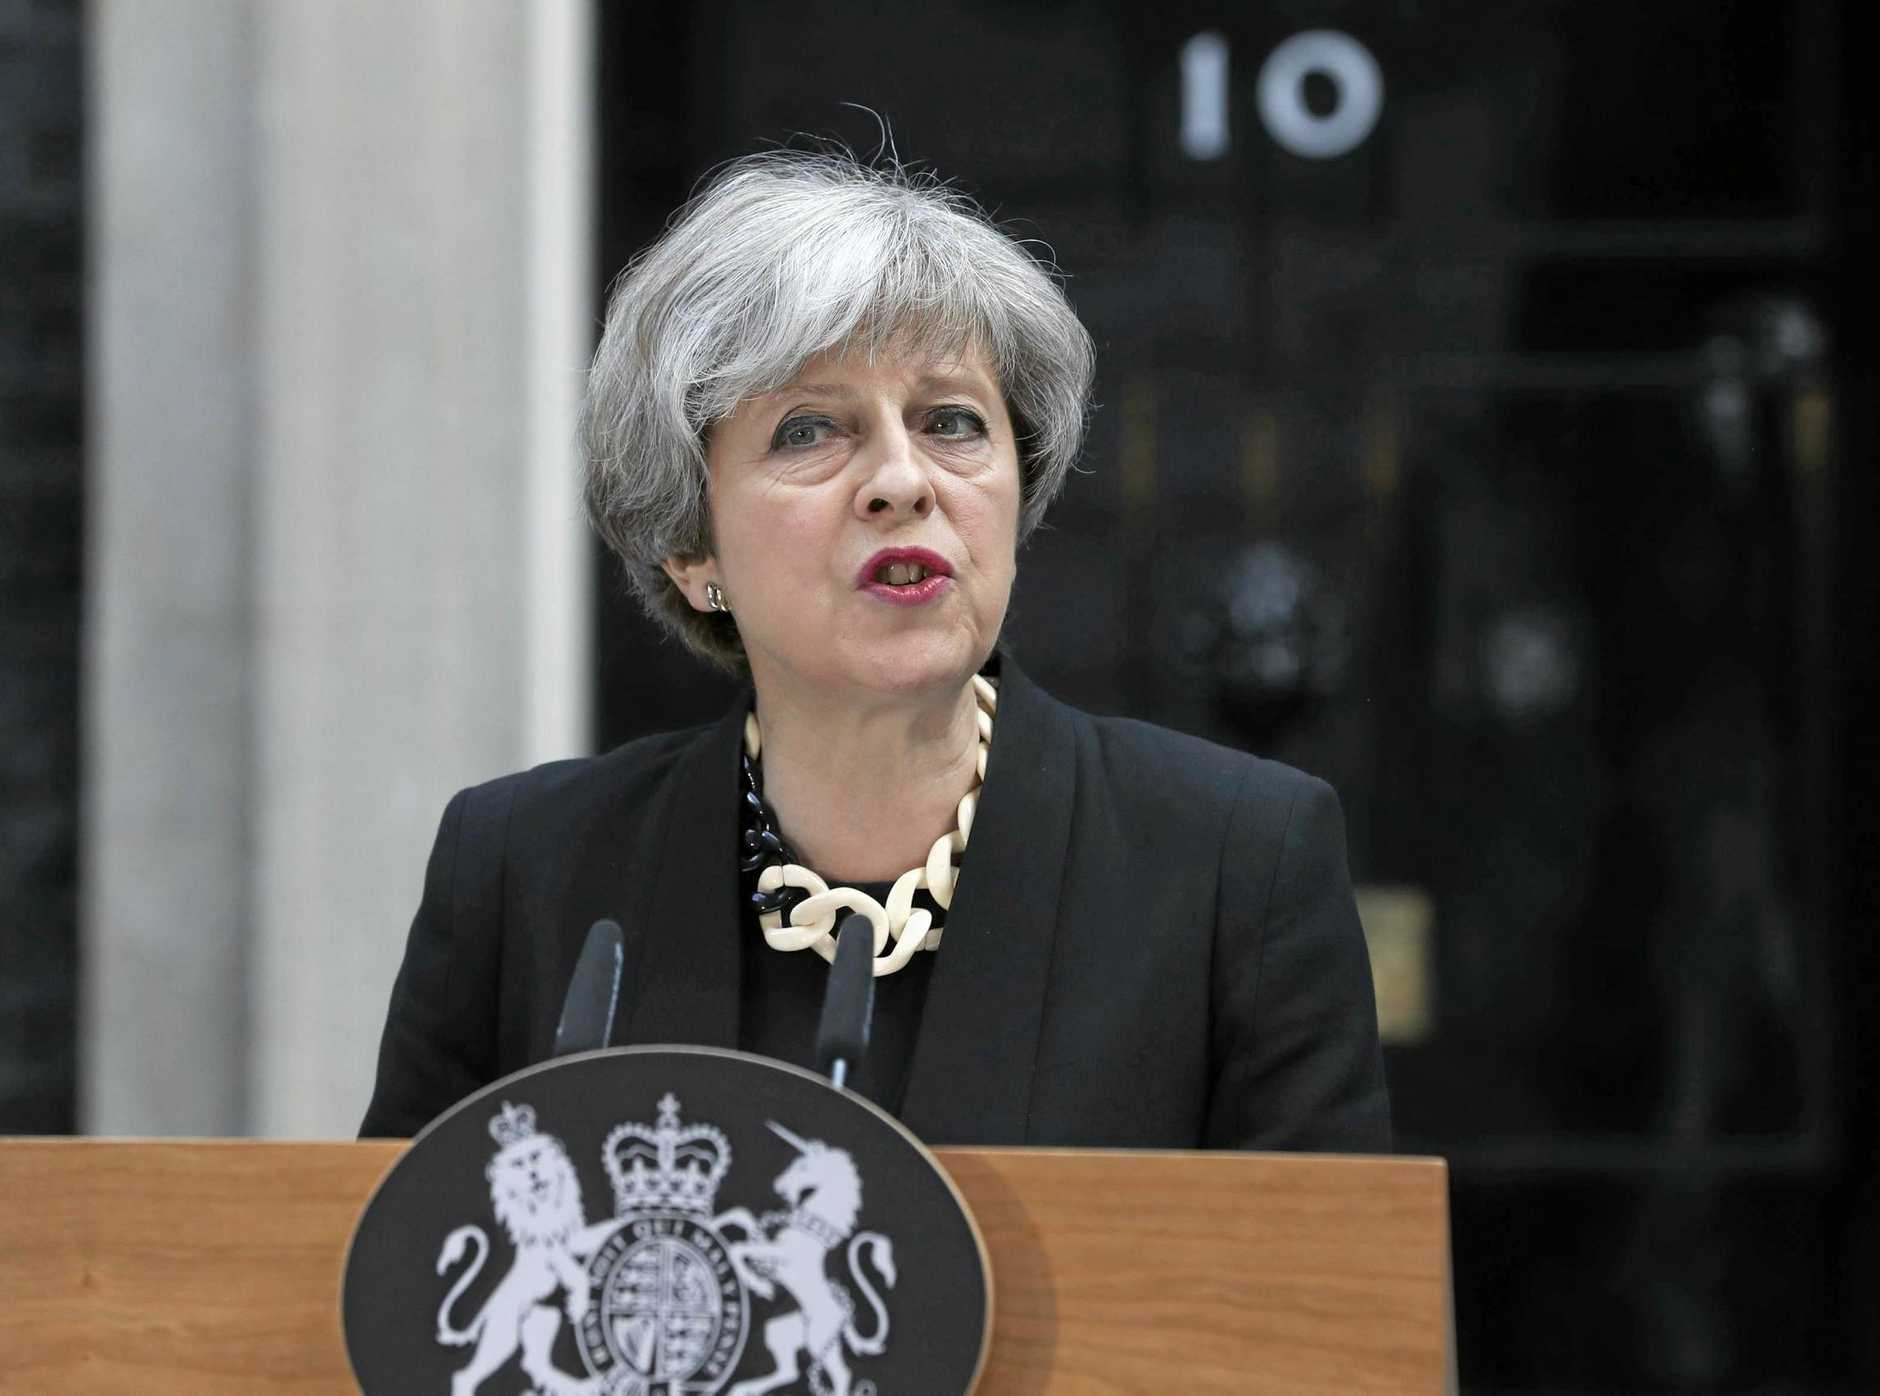 Britain's Prime Minister Theresa May makes a statement outside her residence, 10 Downing Street, London.